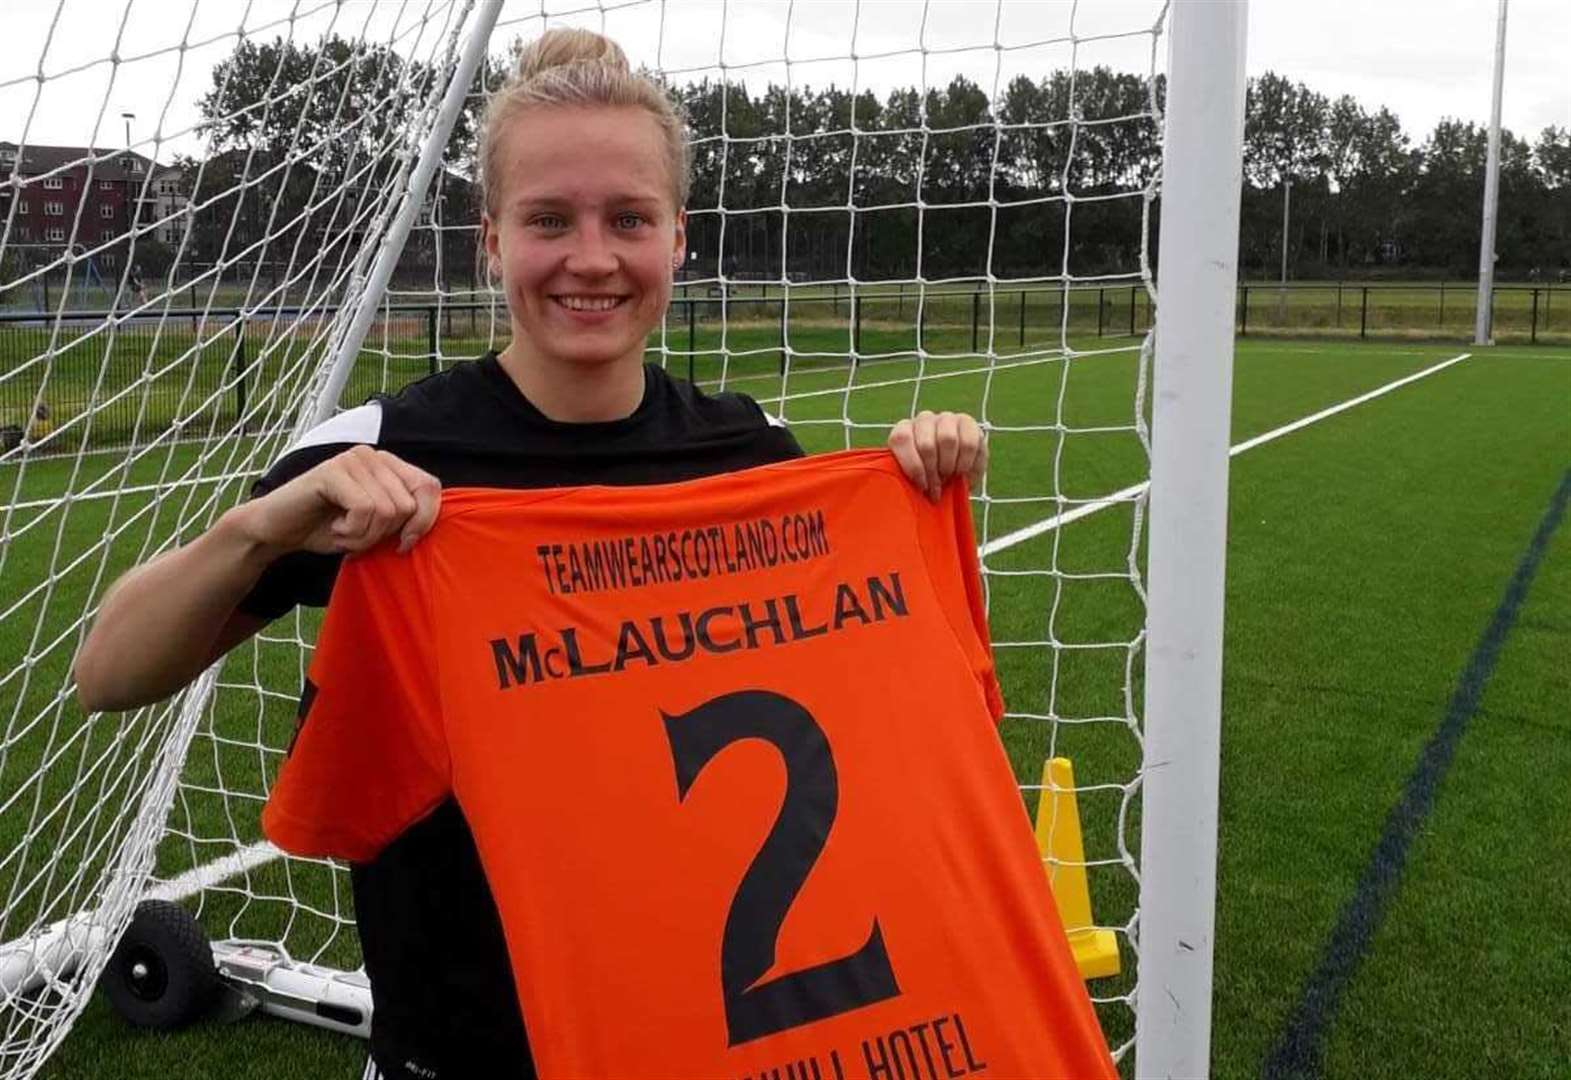 Black Isle footballer signs for Scottish champions